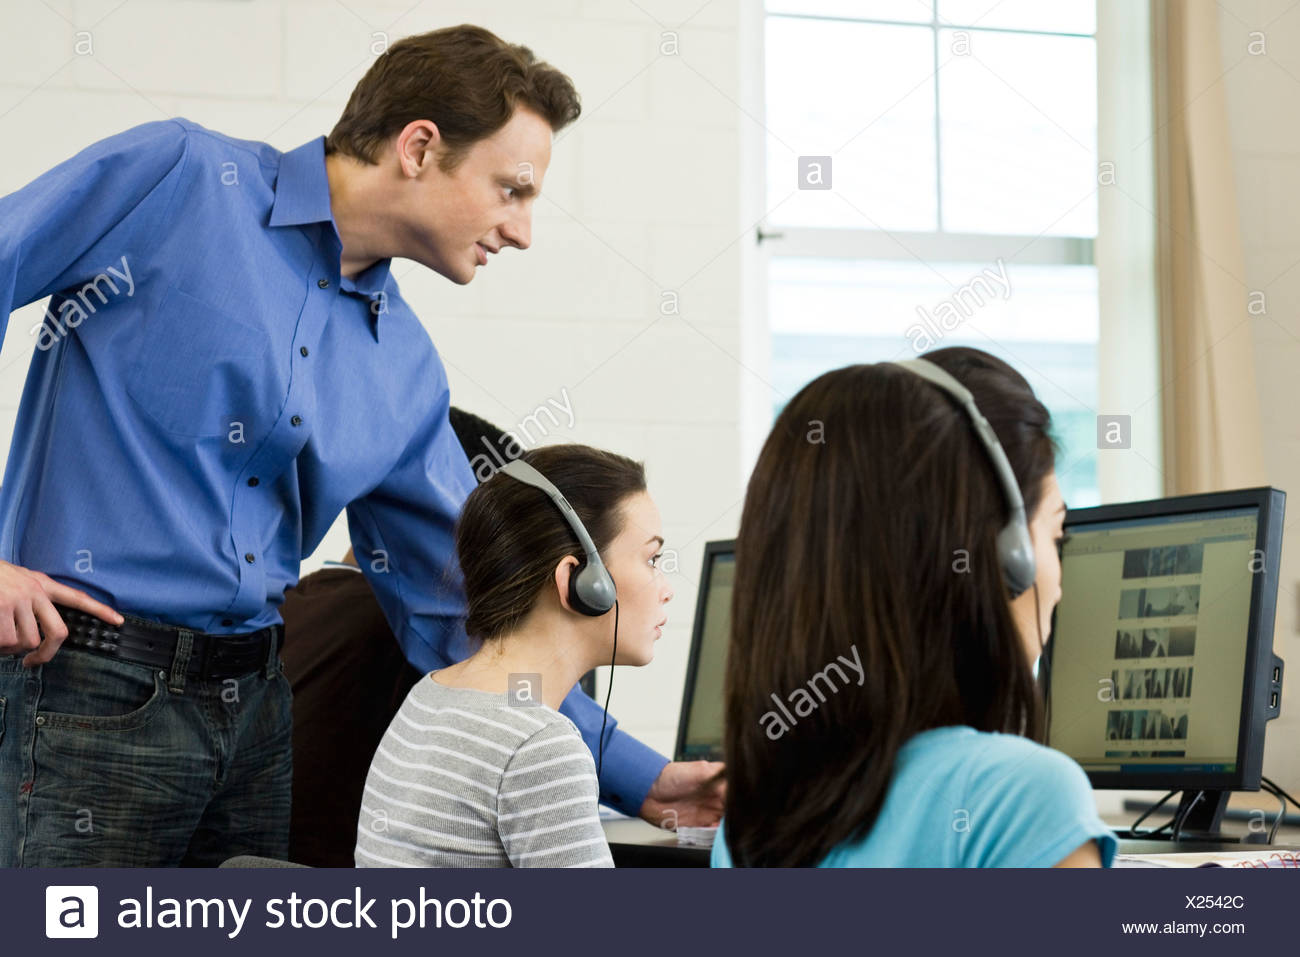 Teacher assisting high school students in computer lab - Stock Image